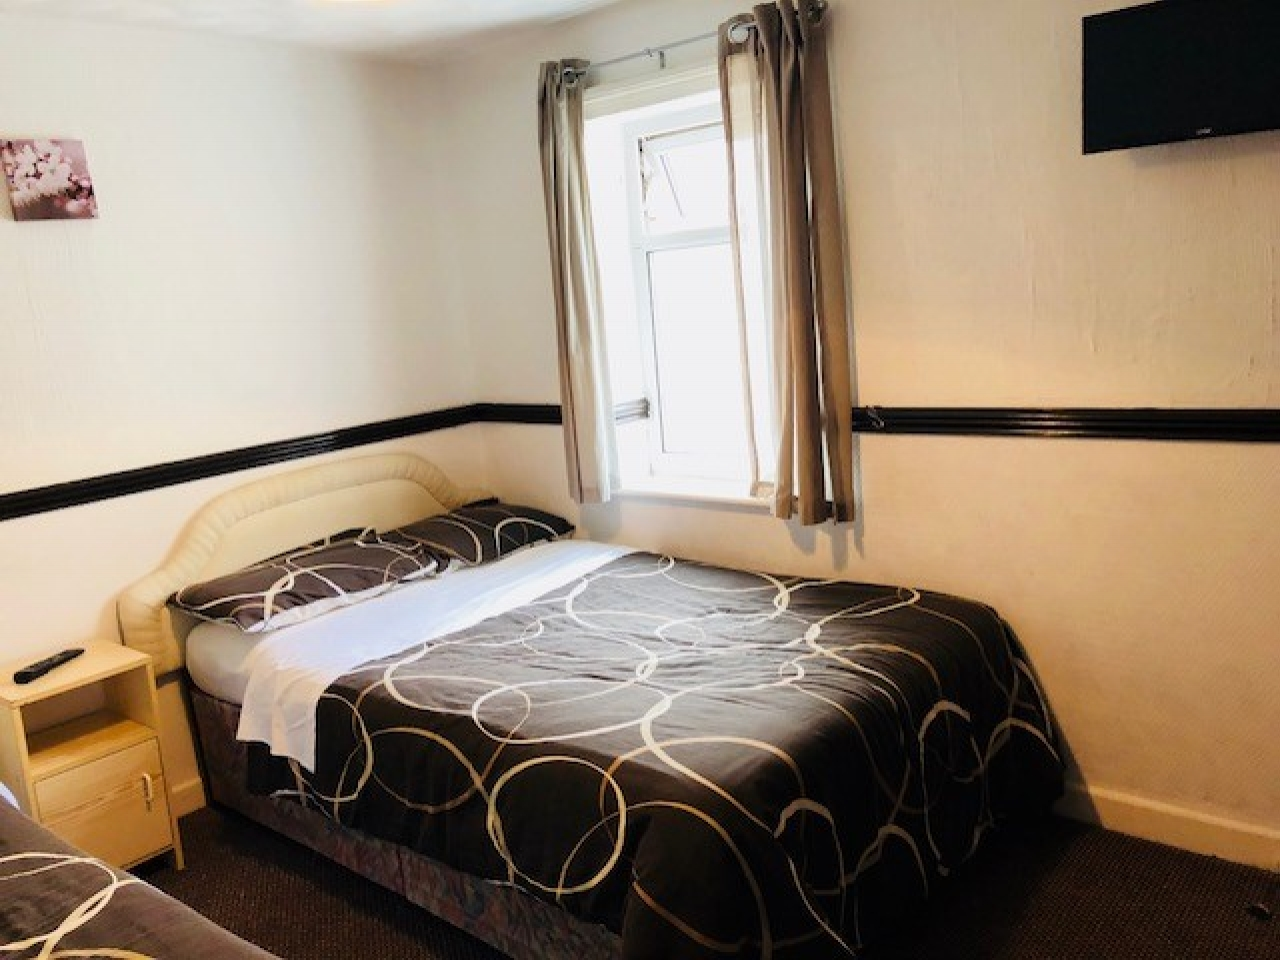 12 Bedroom Hotel For Sale - Photograph 6